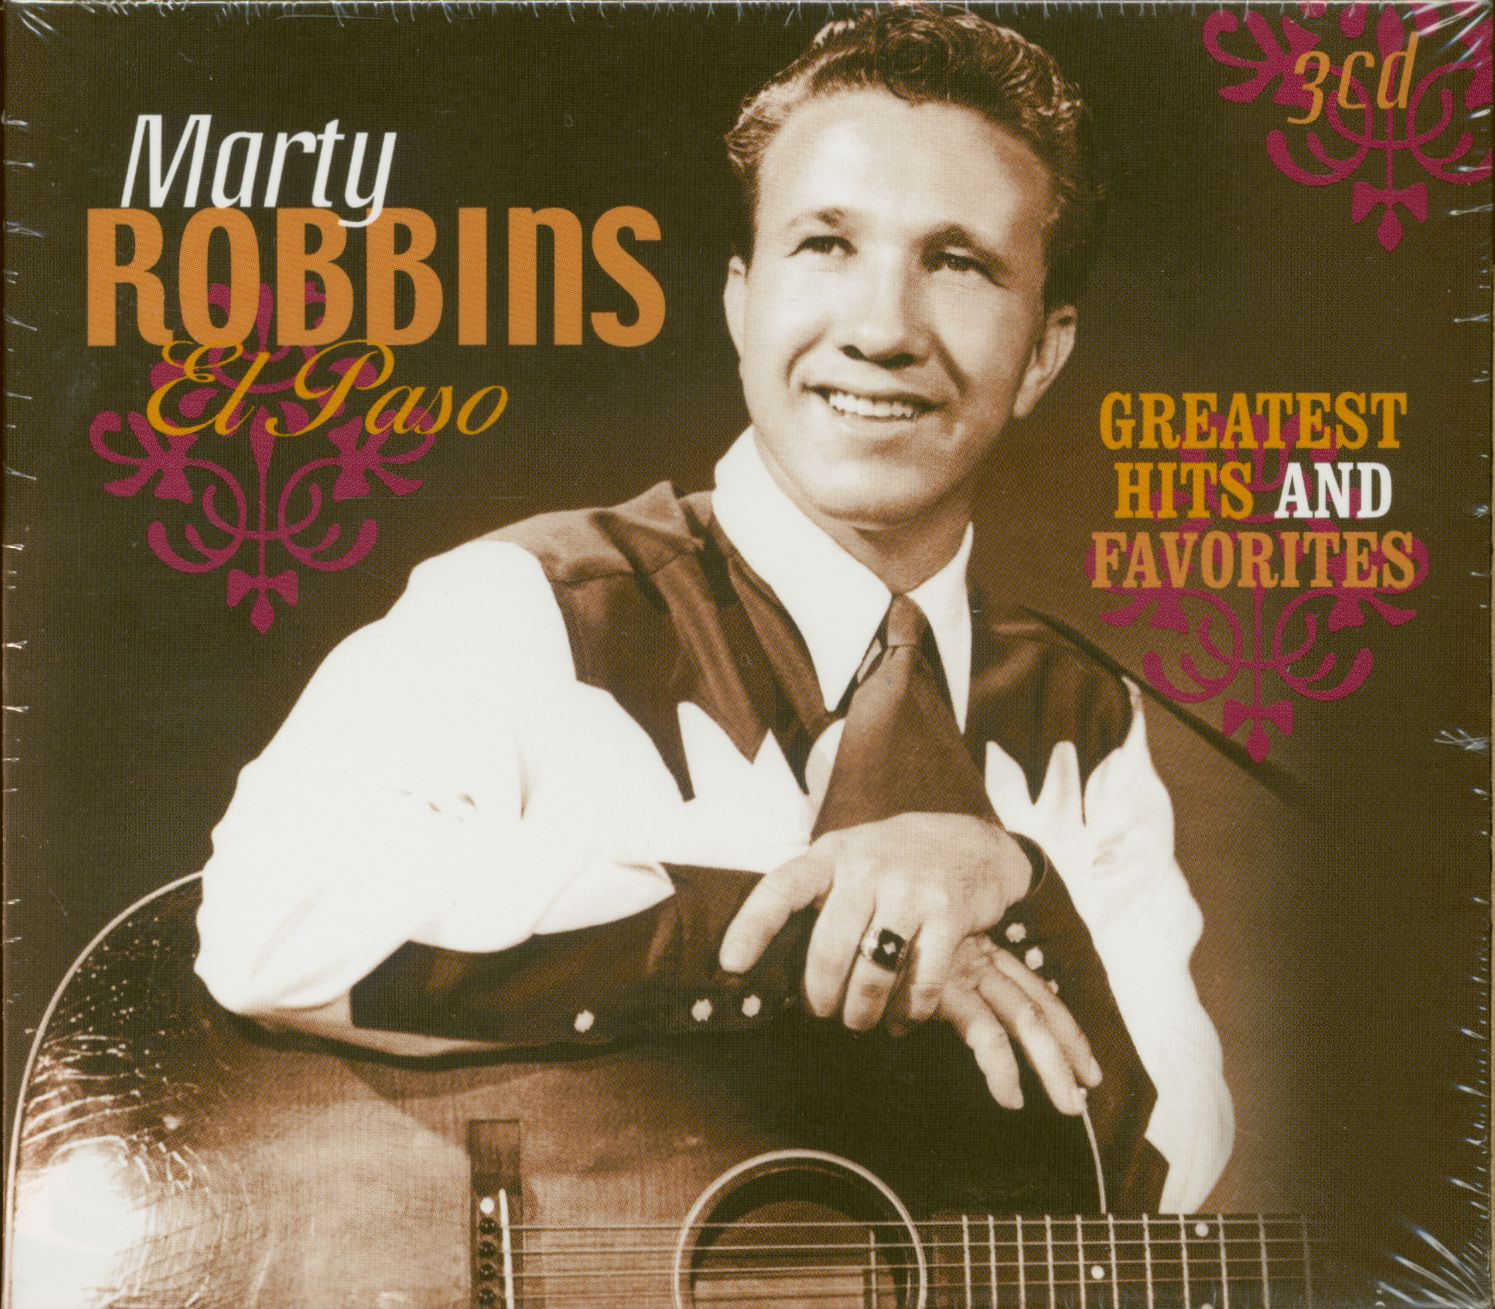 Marty Robbins - El Paso - Greatest Hits And Favorites (3-CD) - Classic  Countr...